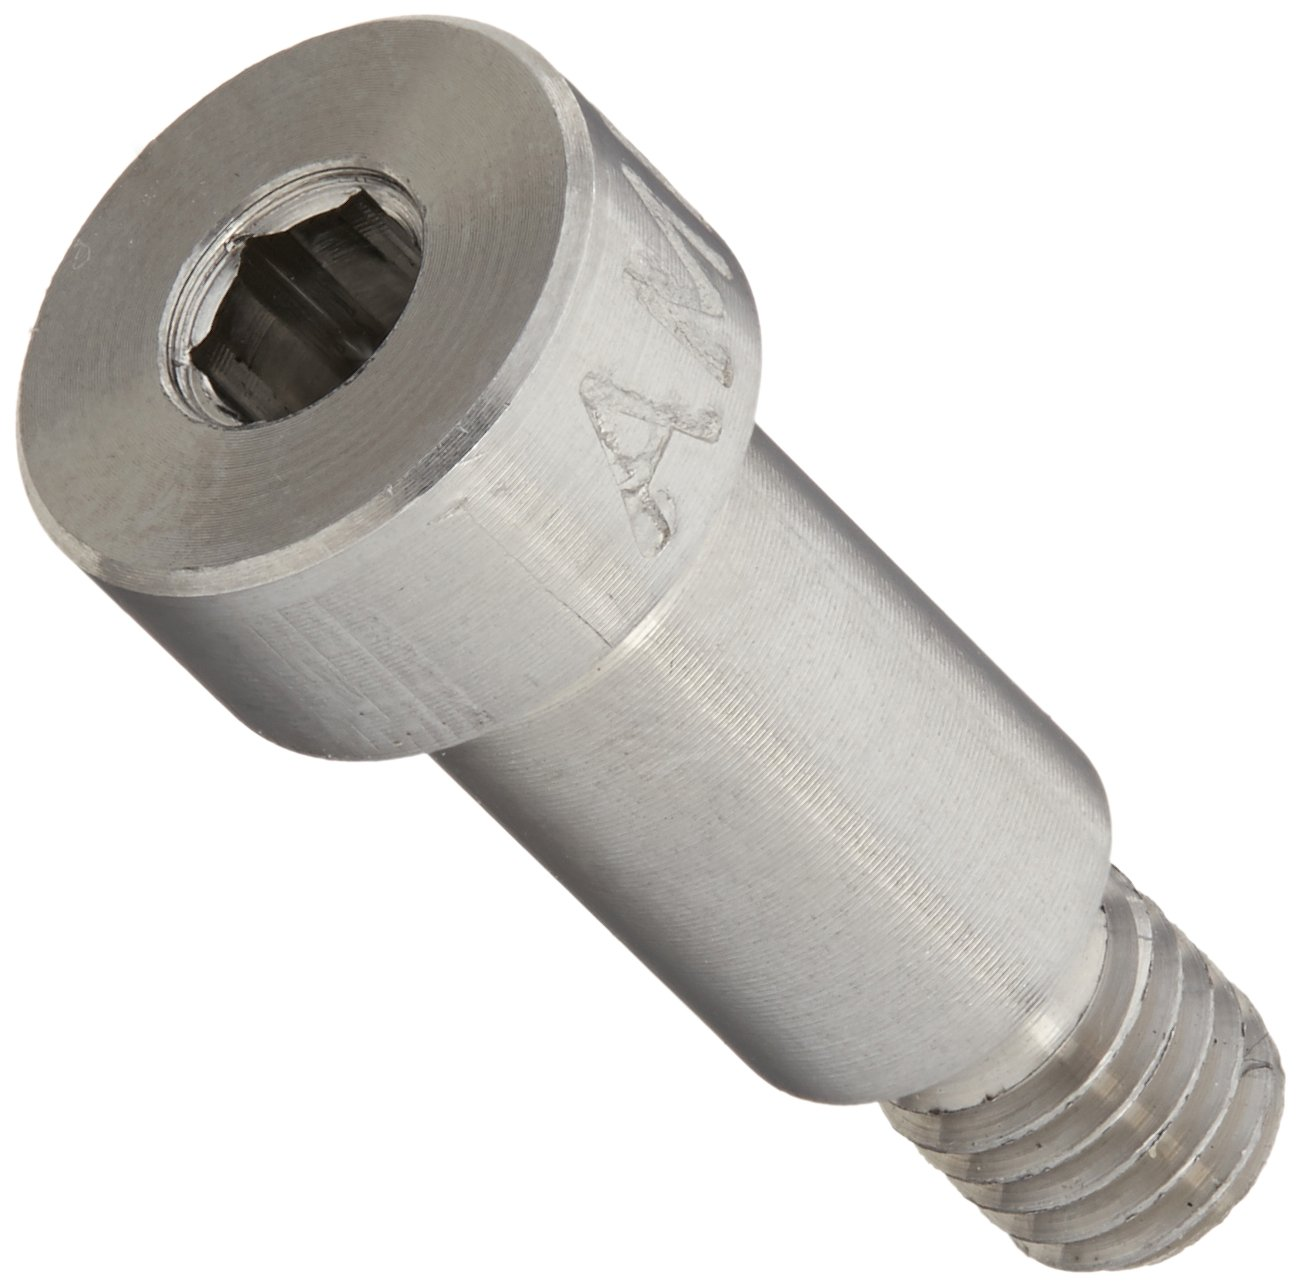 core and Cap//core Remover 1//4 5 Repair//Overhaul Valve batches air Conditioning air Inlet Valve Spare Parts unidirectional 6mm Tube Outer Diameter-5 Pack